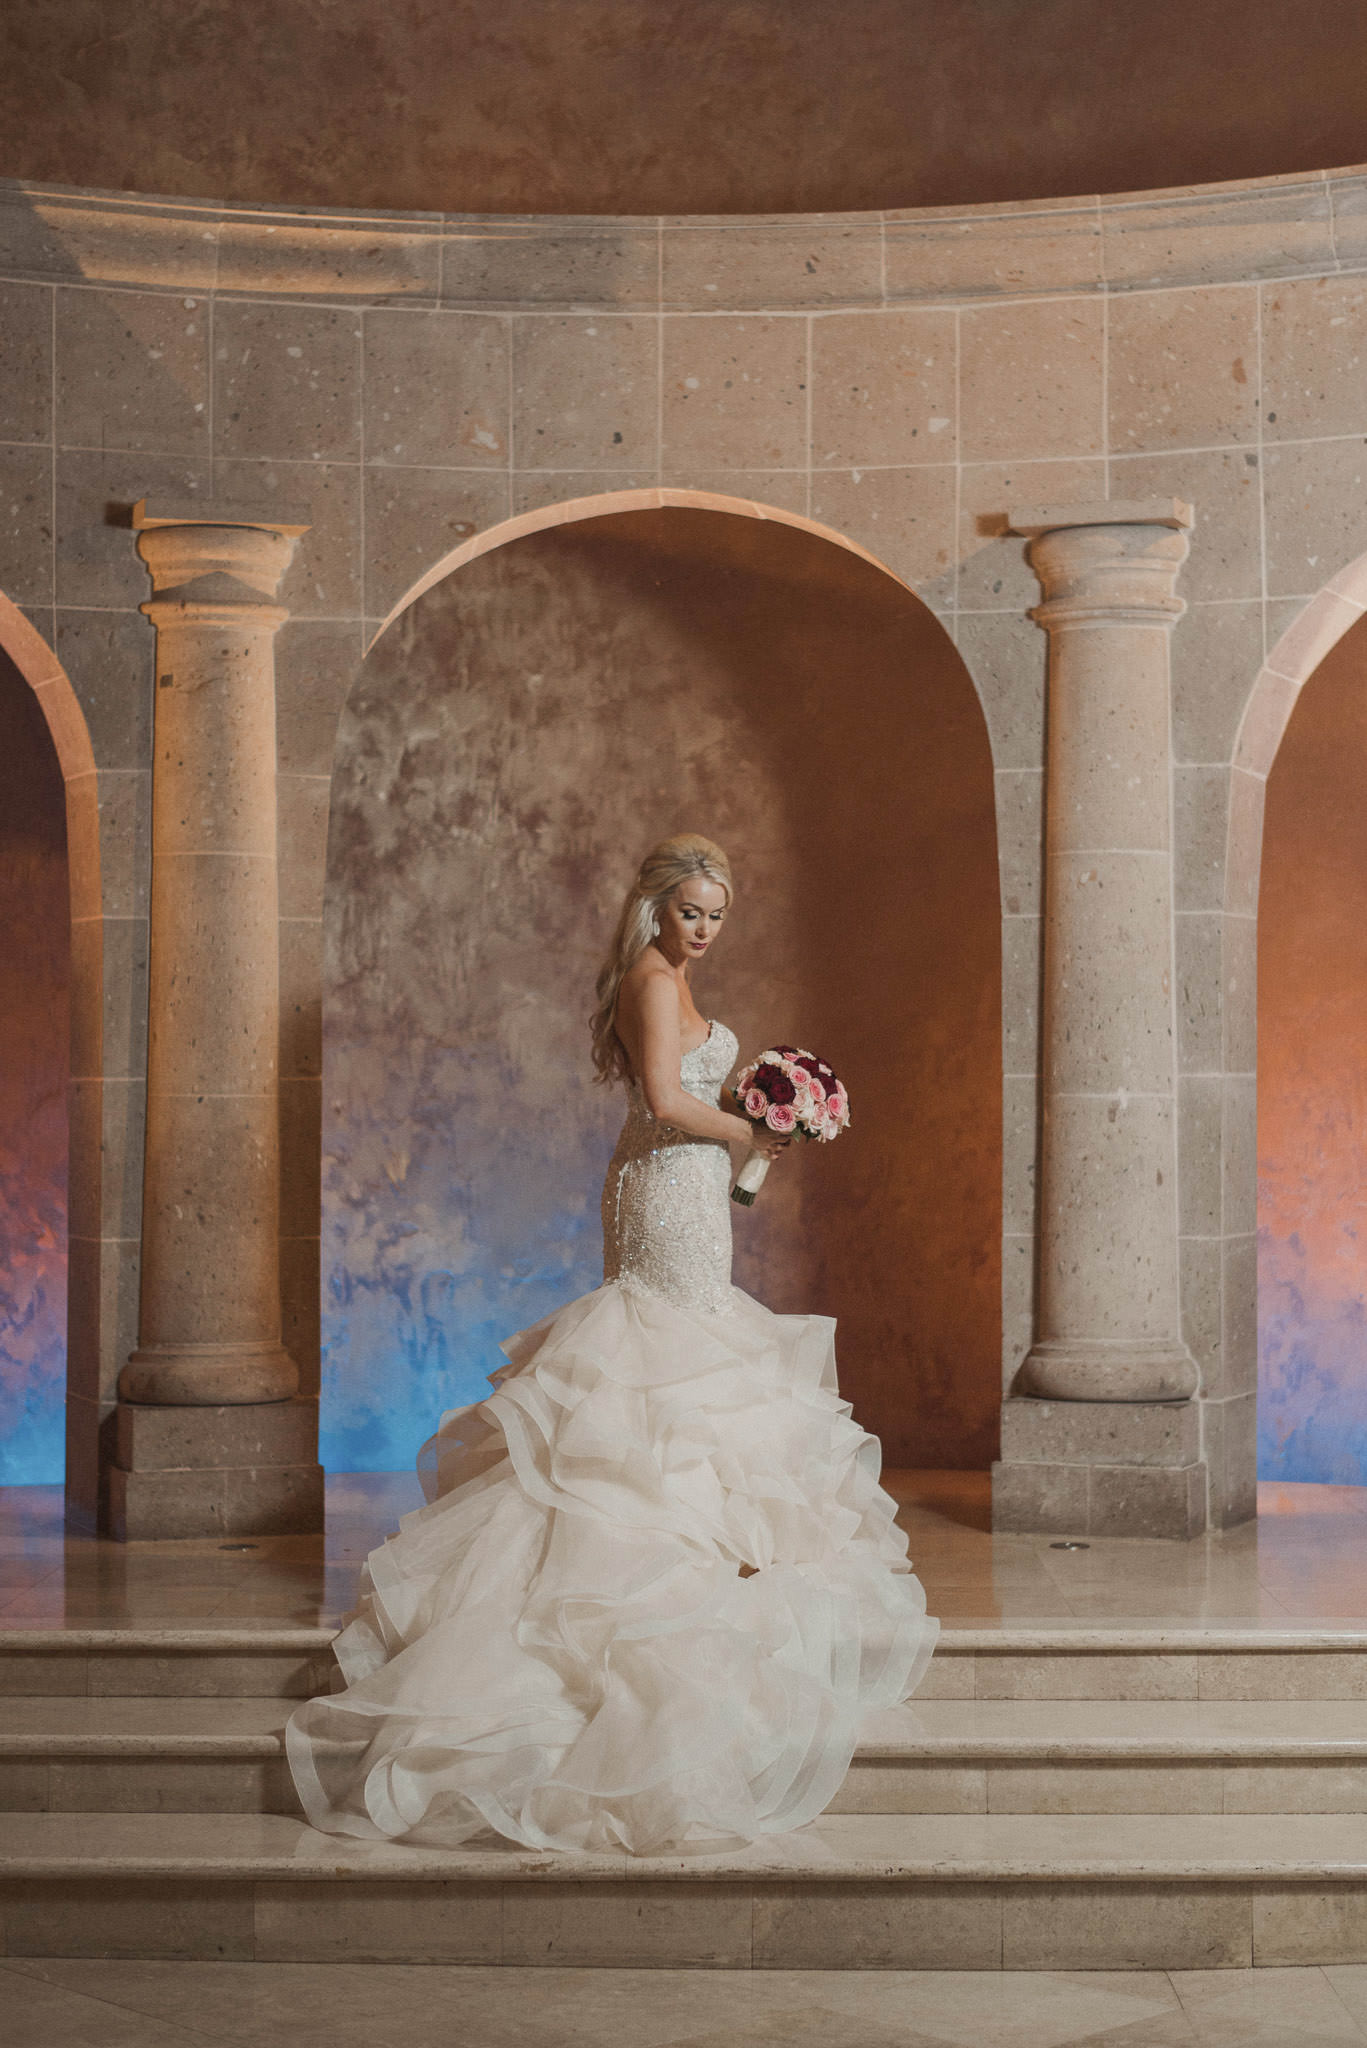 bridal-wedding-houston-top-venue-bell-tower-34th-photographer